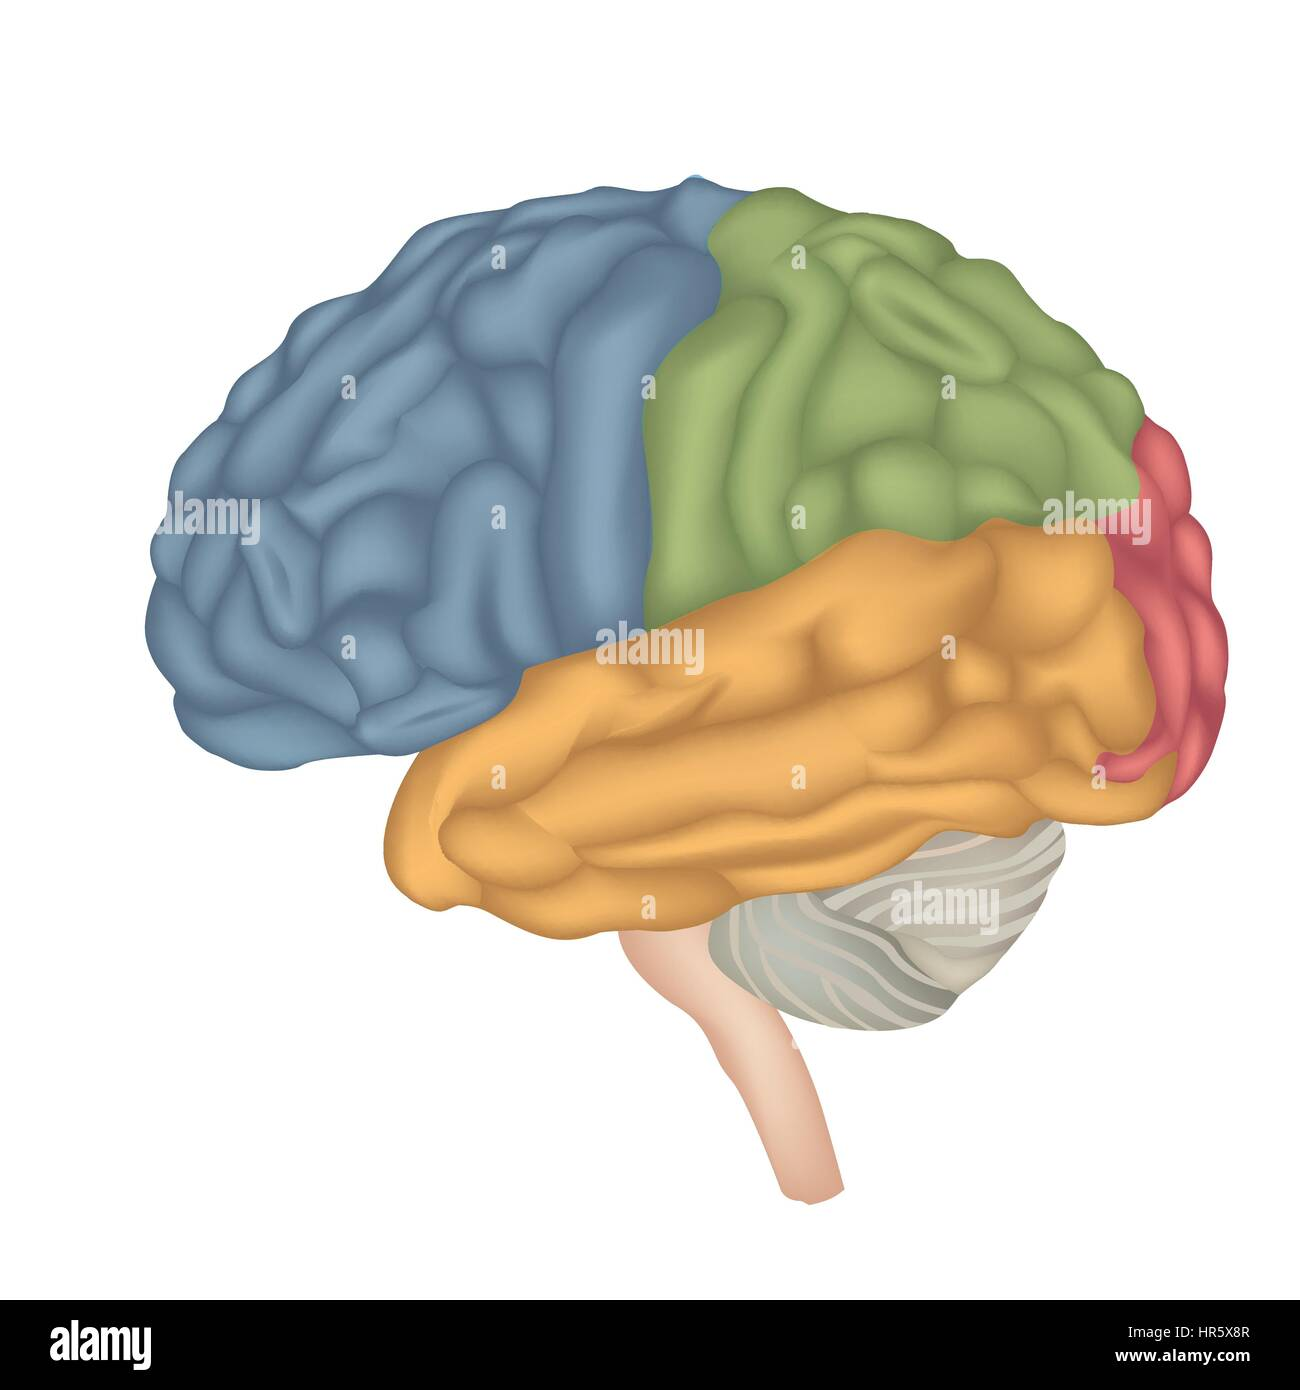 Brain anatomy. Human brain lateral view. Illustration isolated on white background. - Stock Image